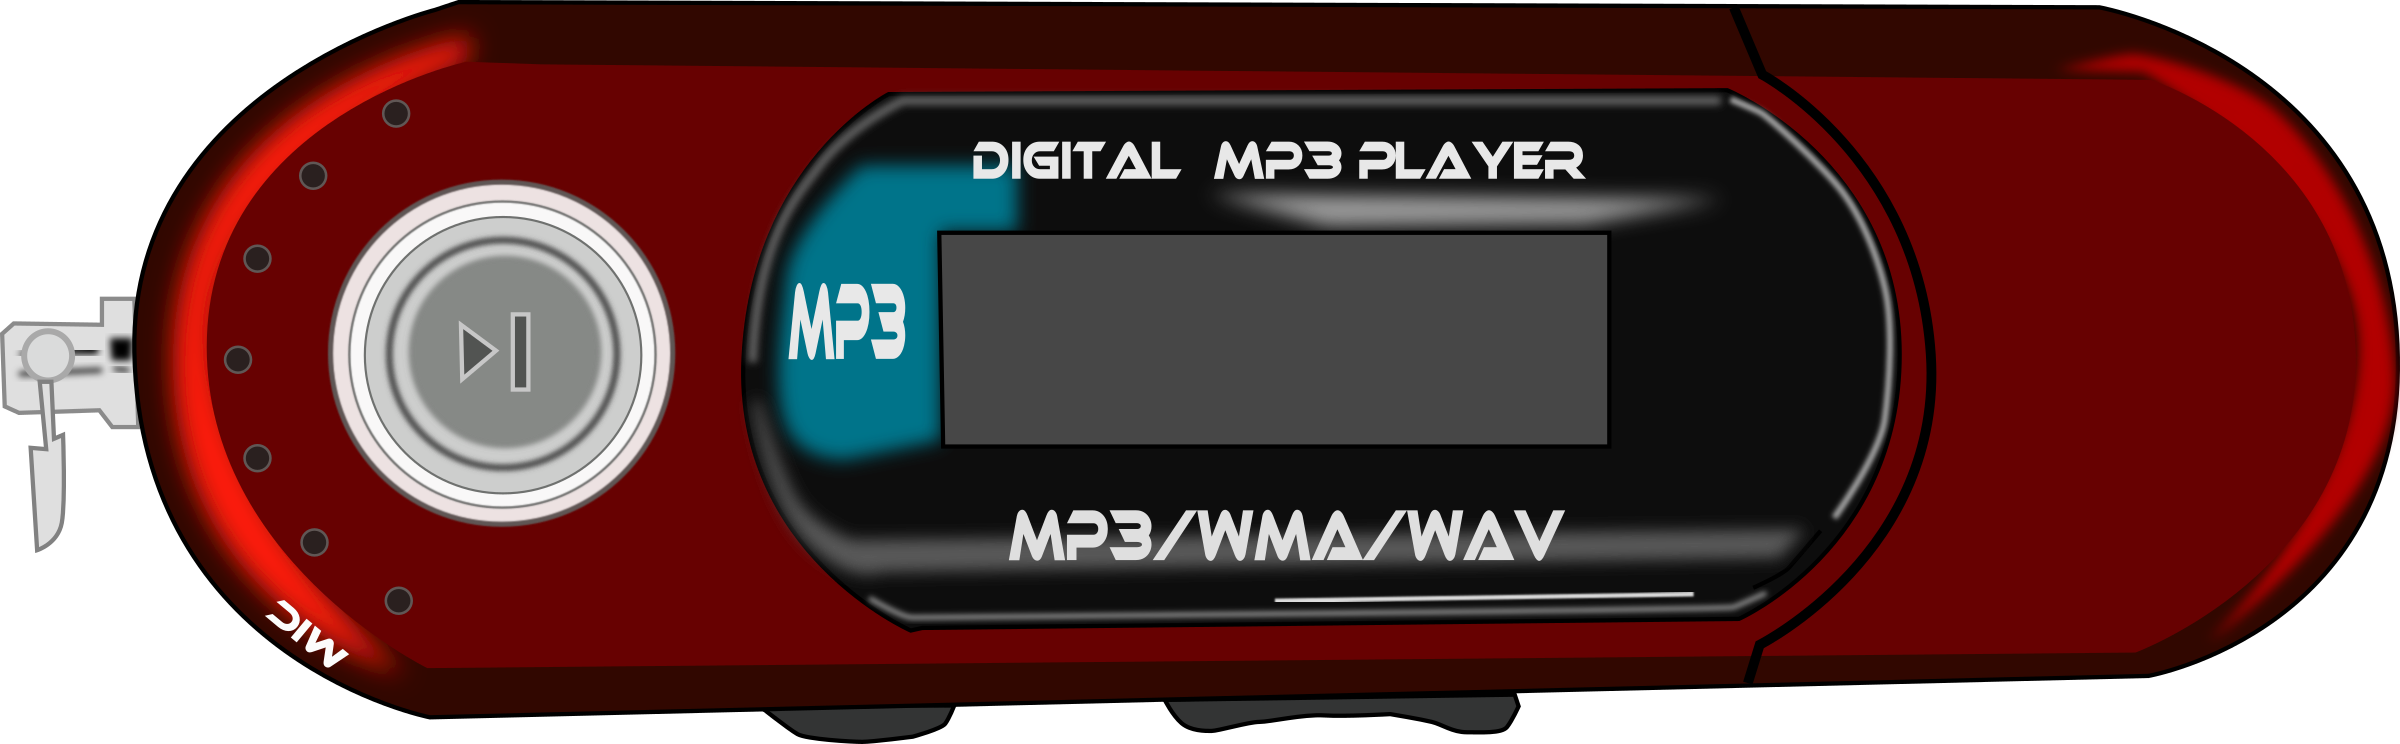 MP3 Player by mystica